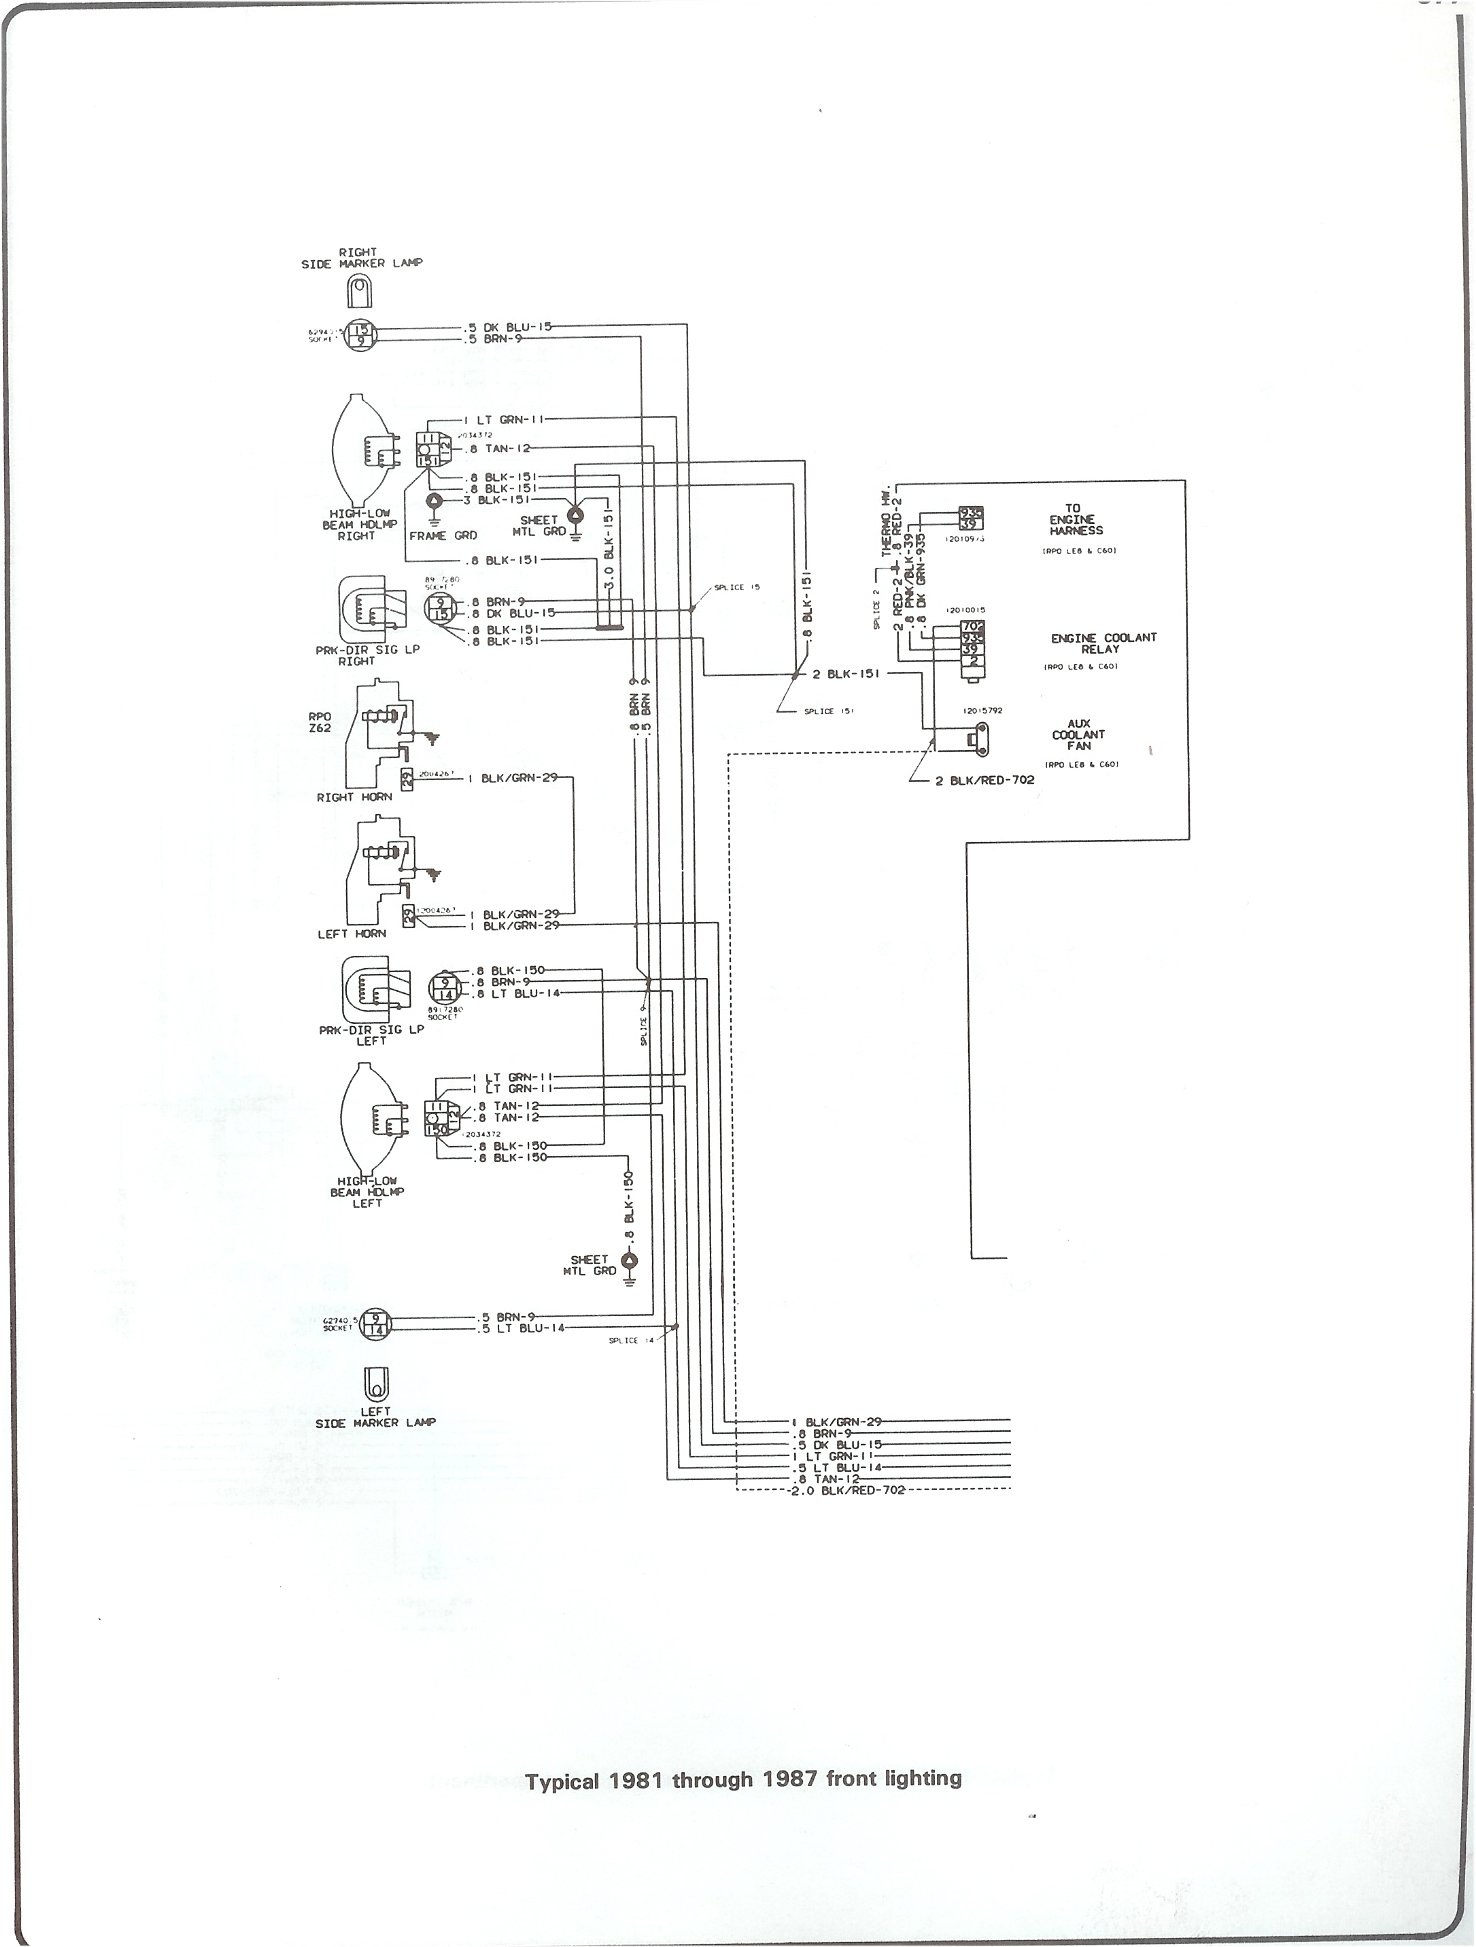 1980 Gmc Wiring Diagram Schematics 1998 K1500 Complete 73 87 Diagrams 2002 Sierra Radio